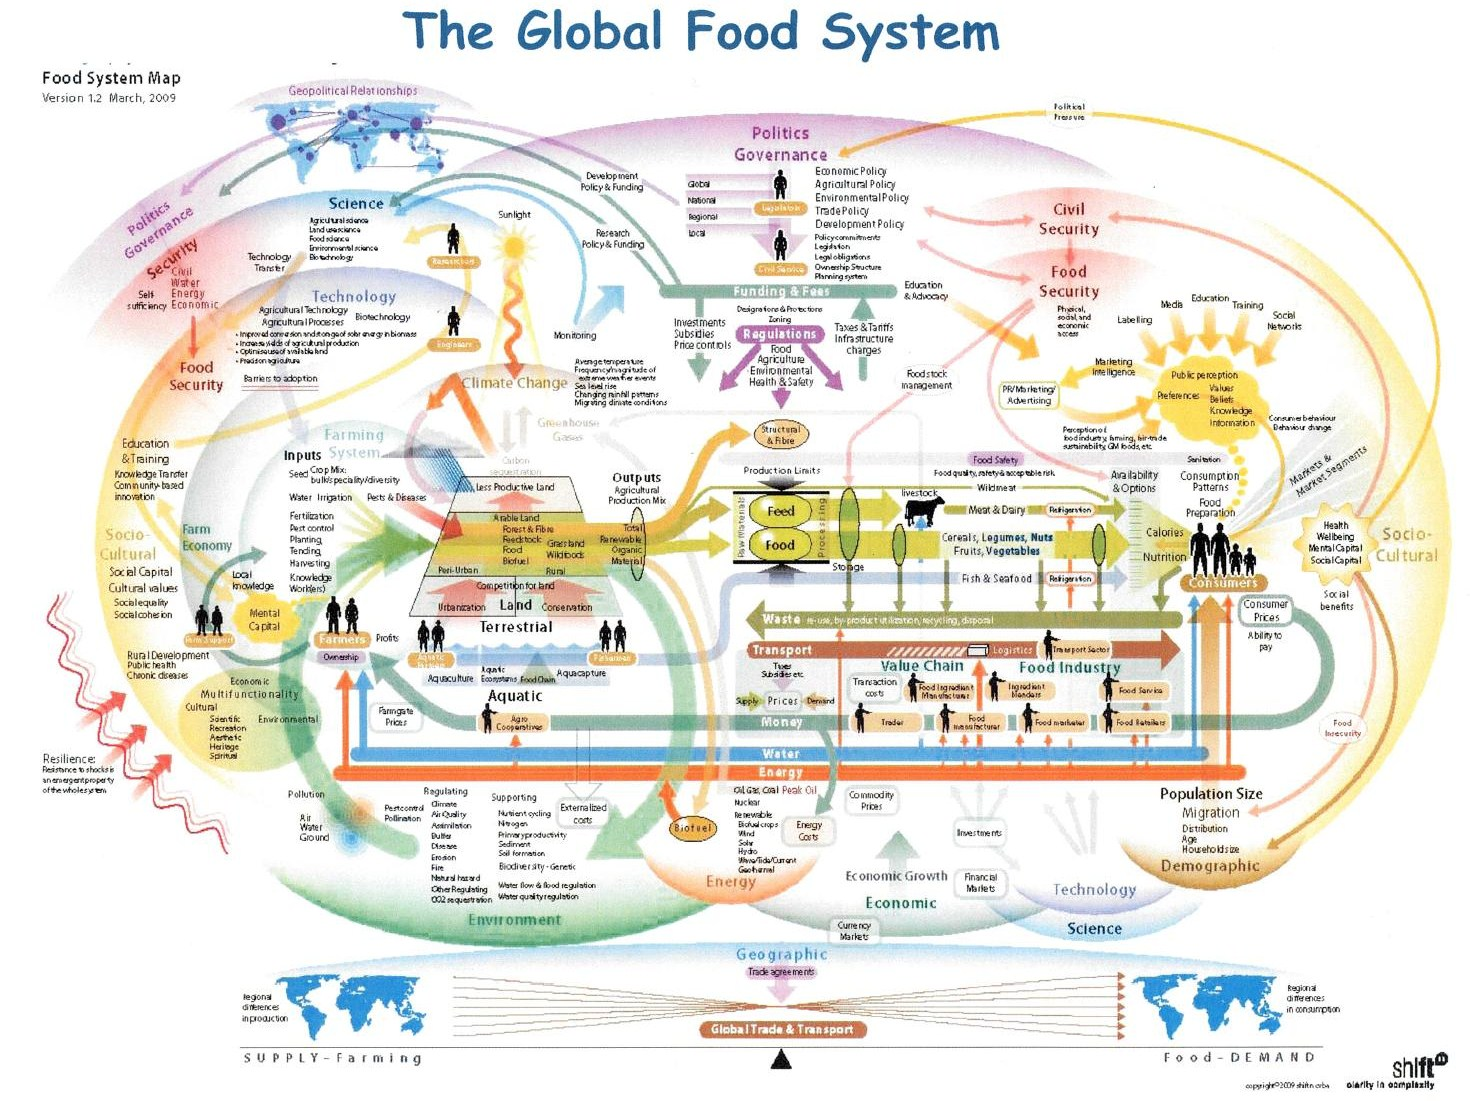 FoodTech Connect Exploring Relationships in the Food System Map